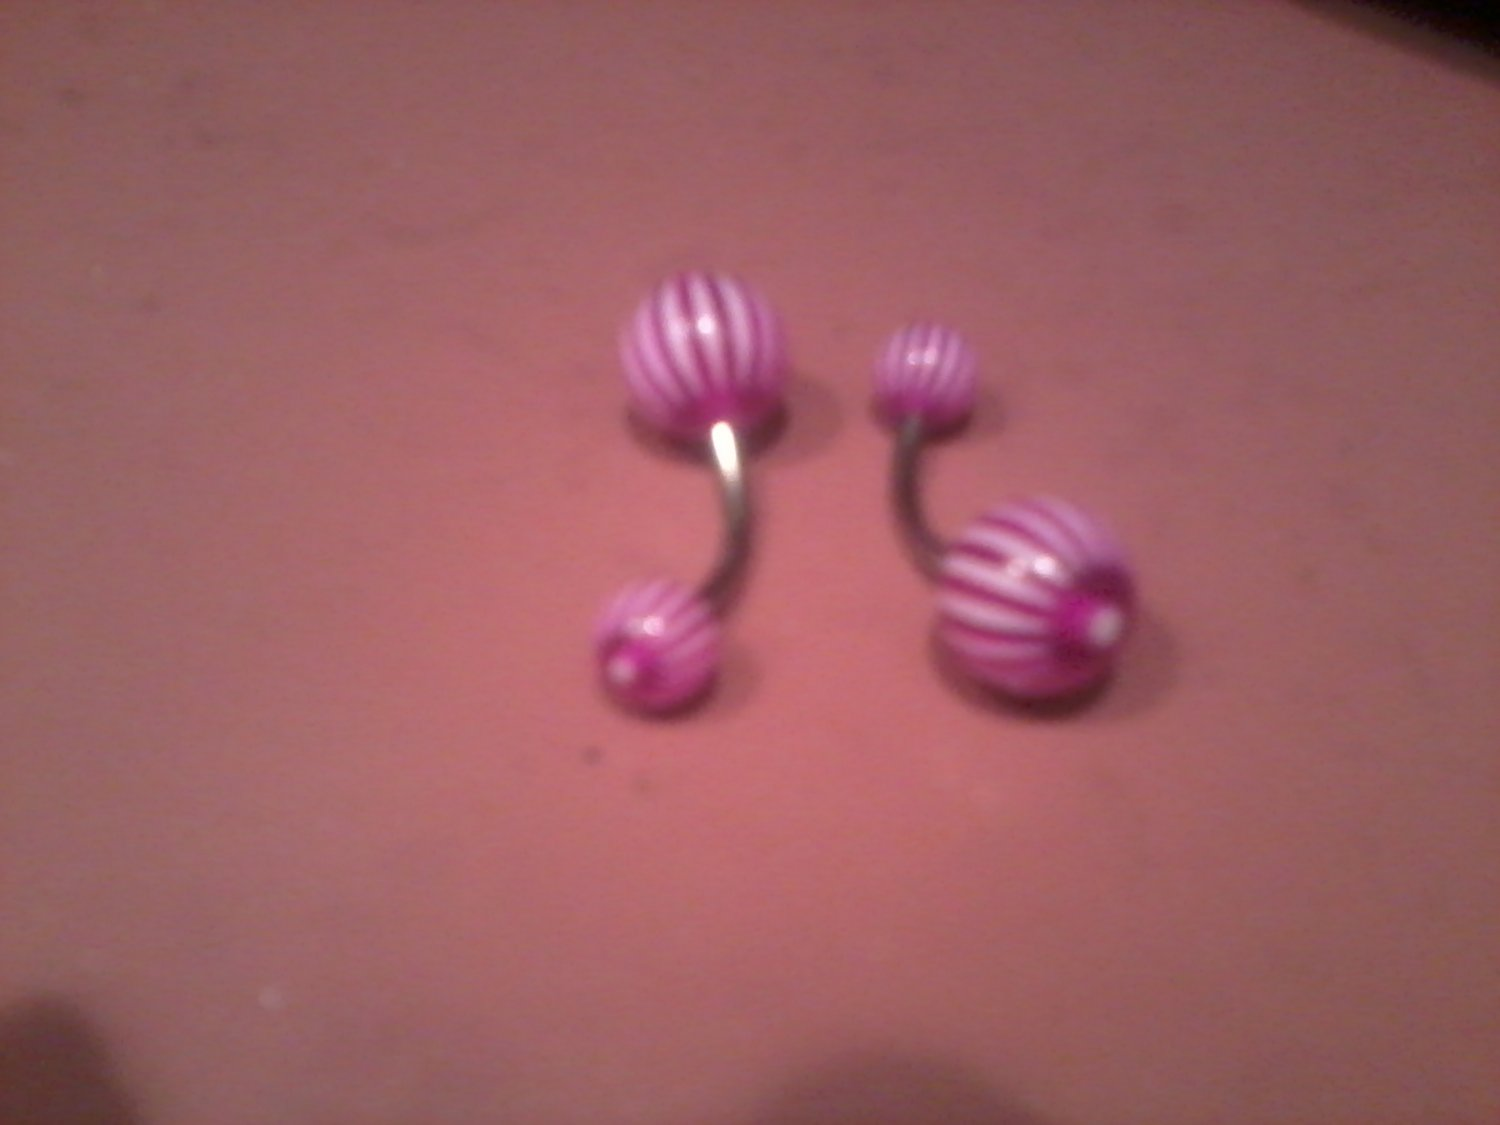 purple and white candy stripped belly button